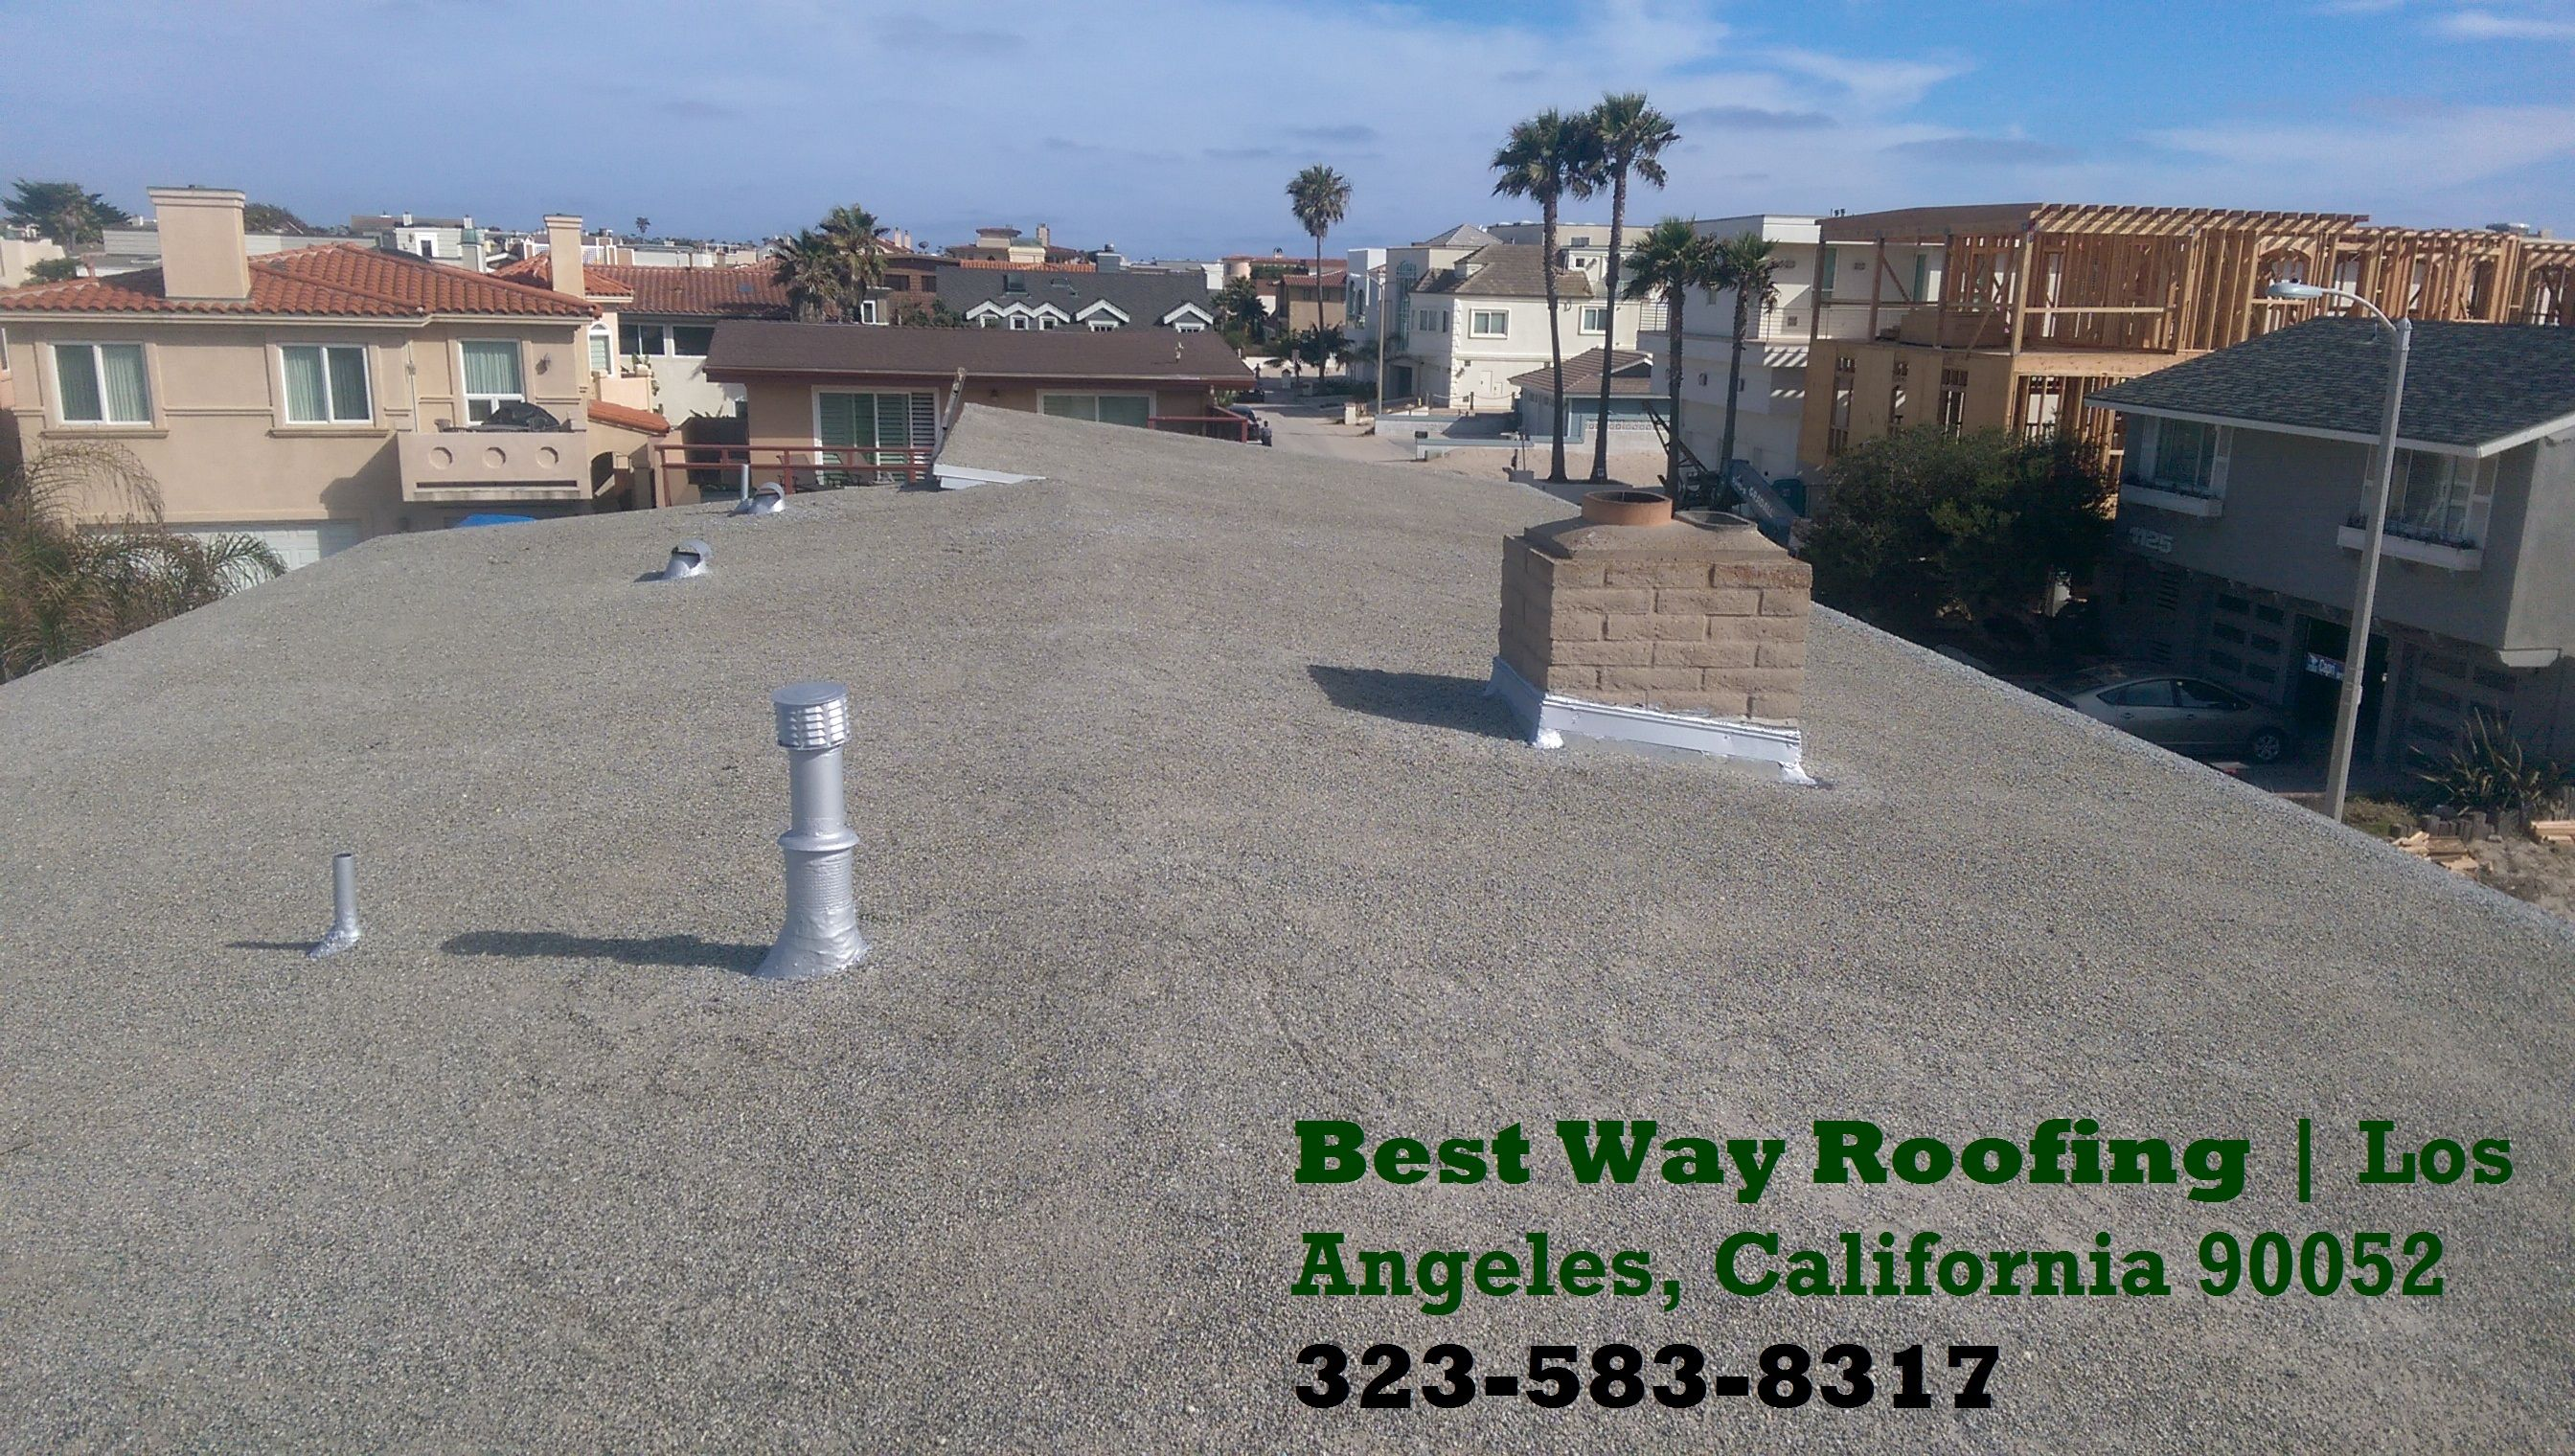 Best Way Roofing Los Angeles Ca 90052 323 583 8317 Roofing Services Roofing Contractors Roofing